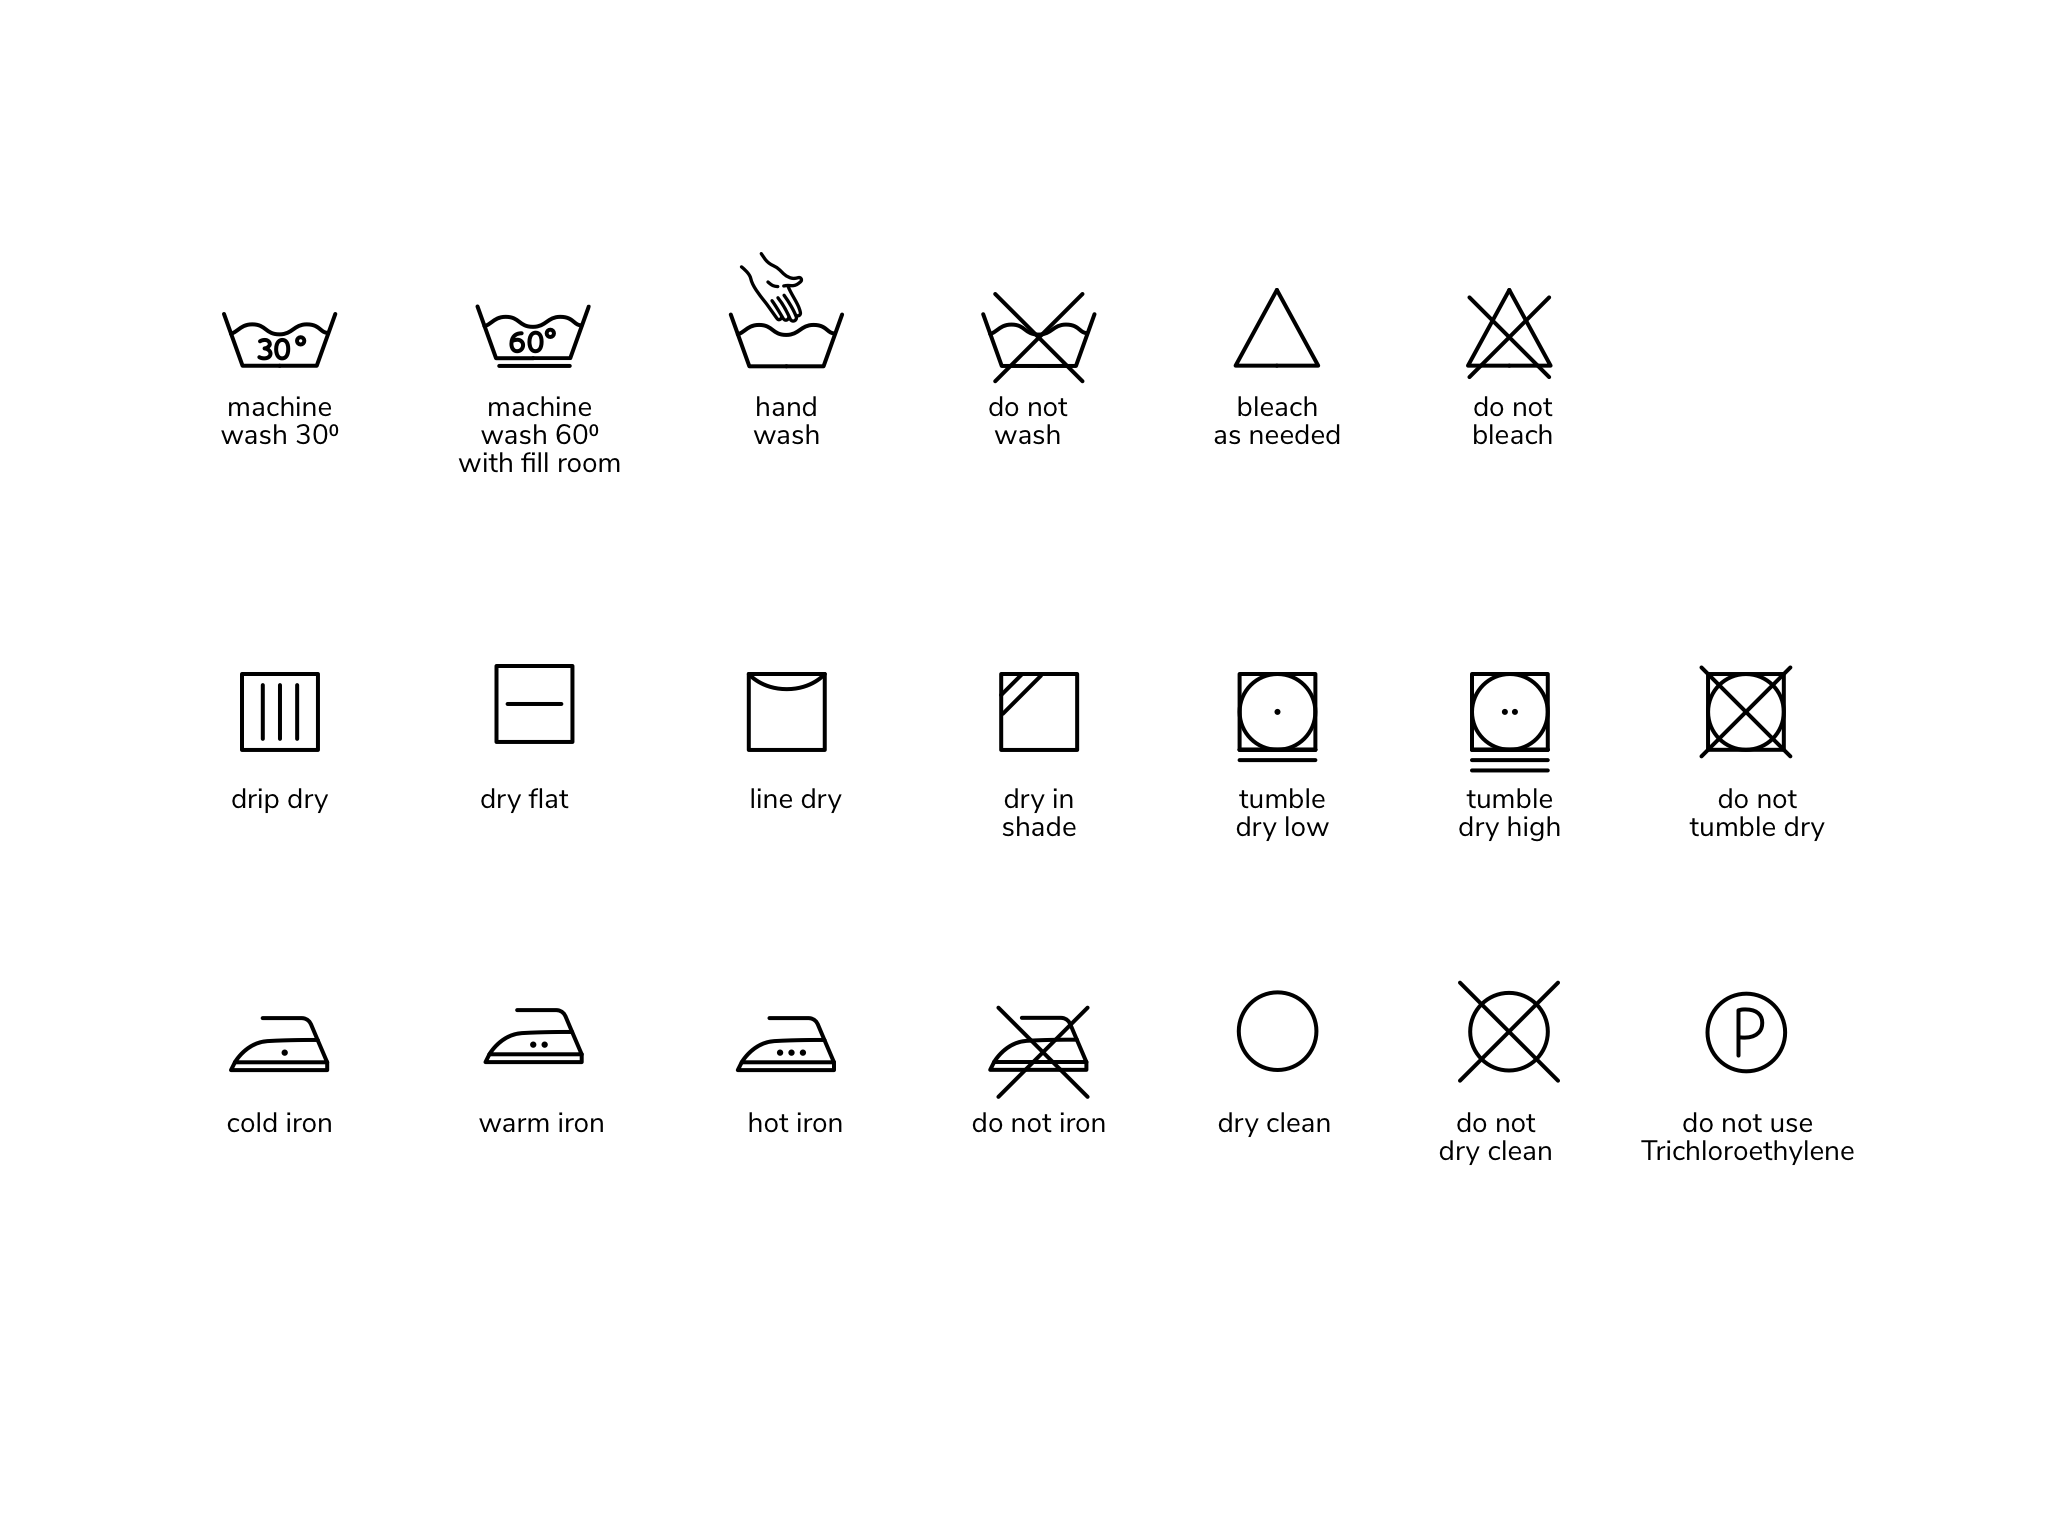 Washing Symbols & Wash Care Guide For Cotton & Pure Linen